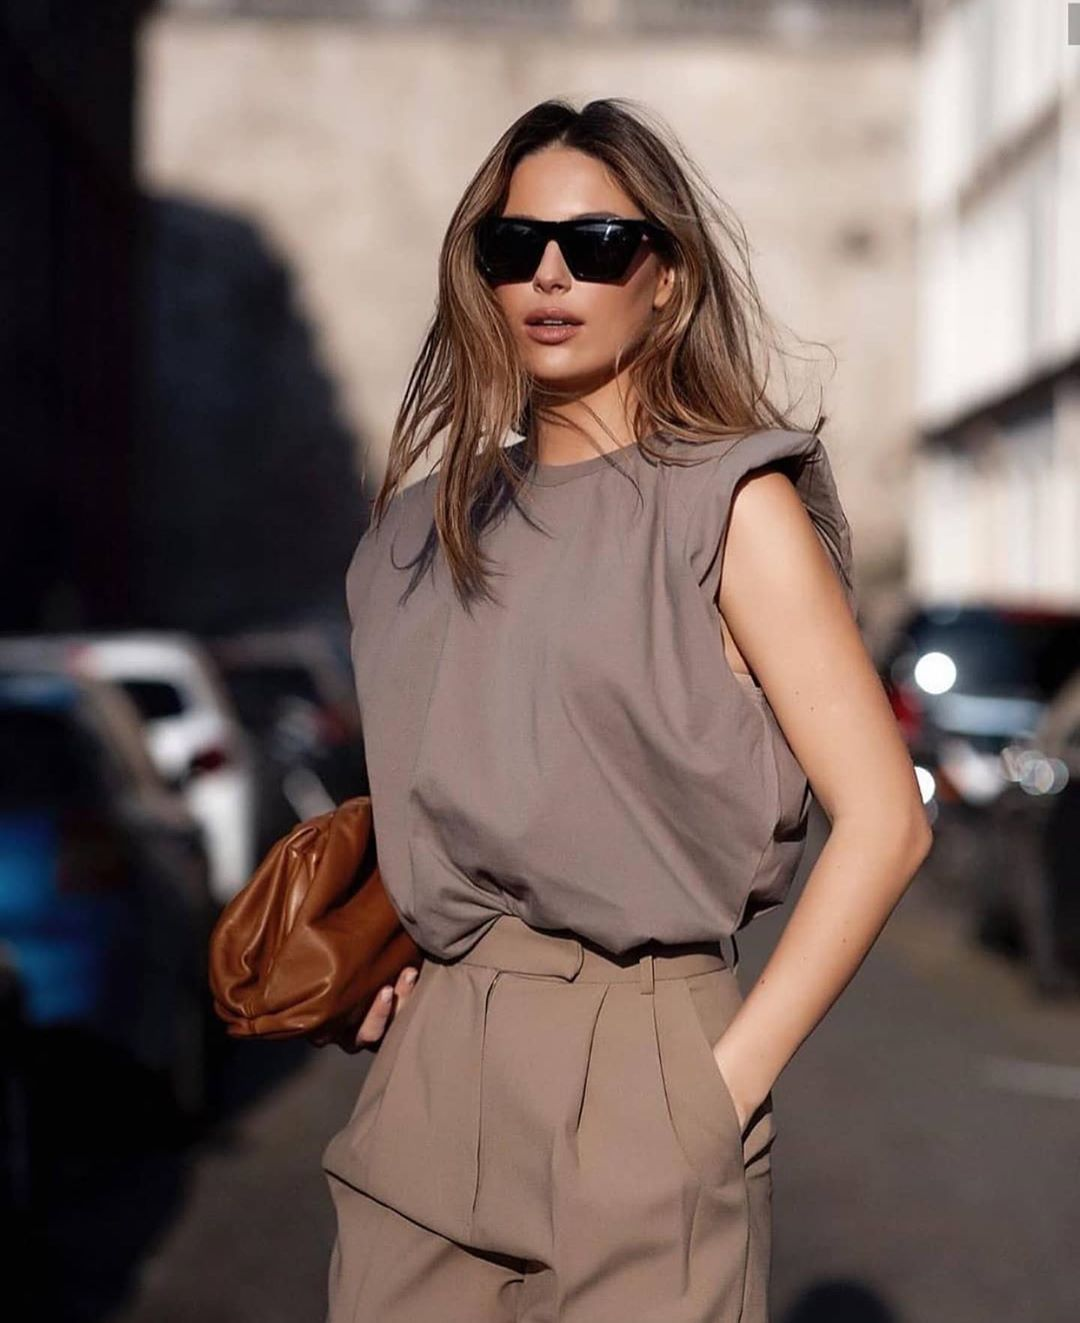 171 Haute Street Style Fashion Outfits for Women images 1